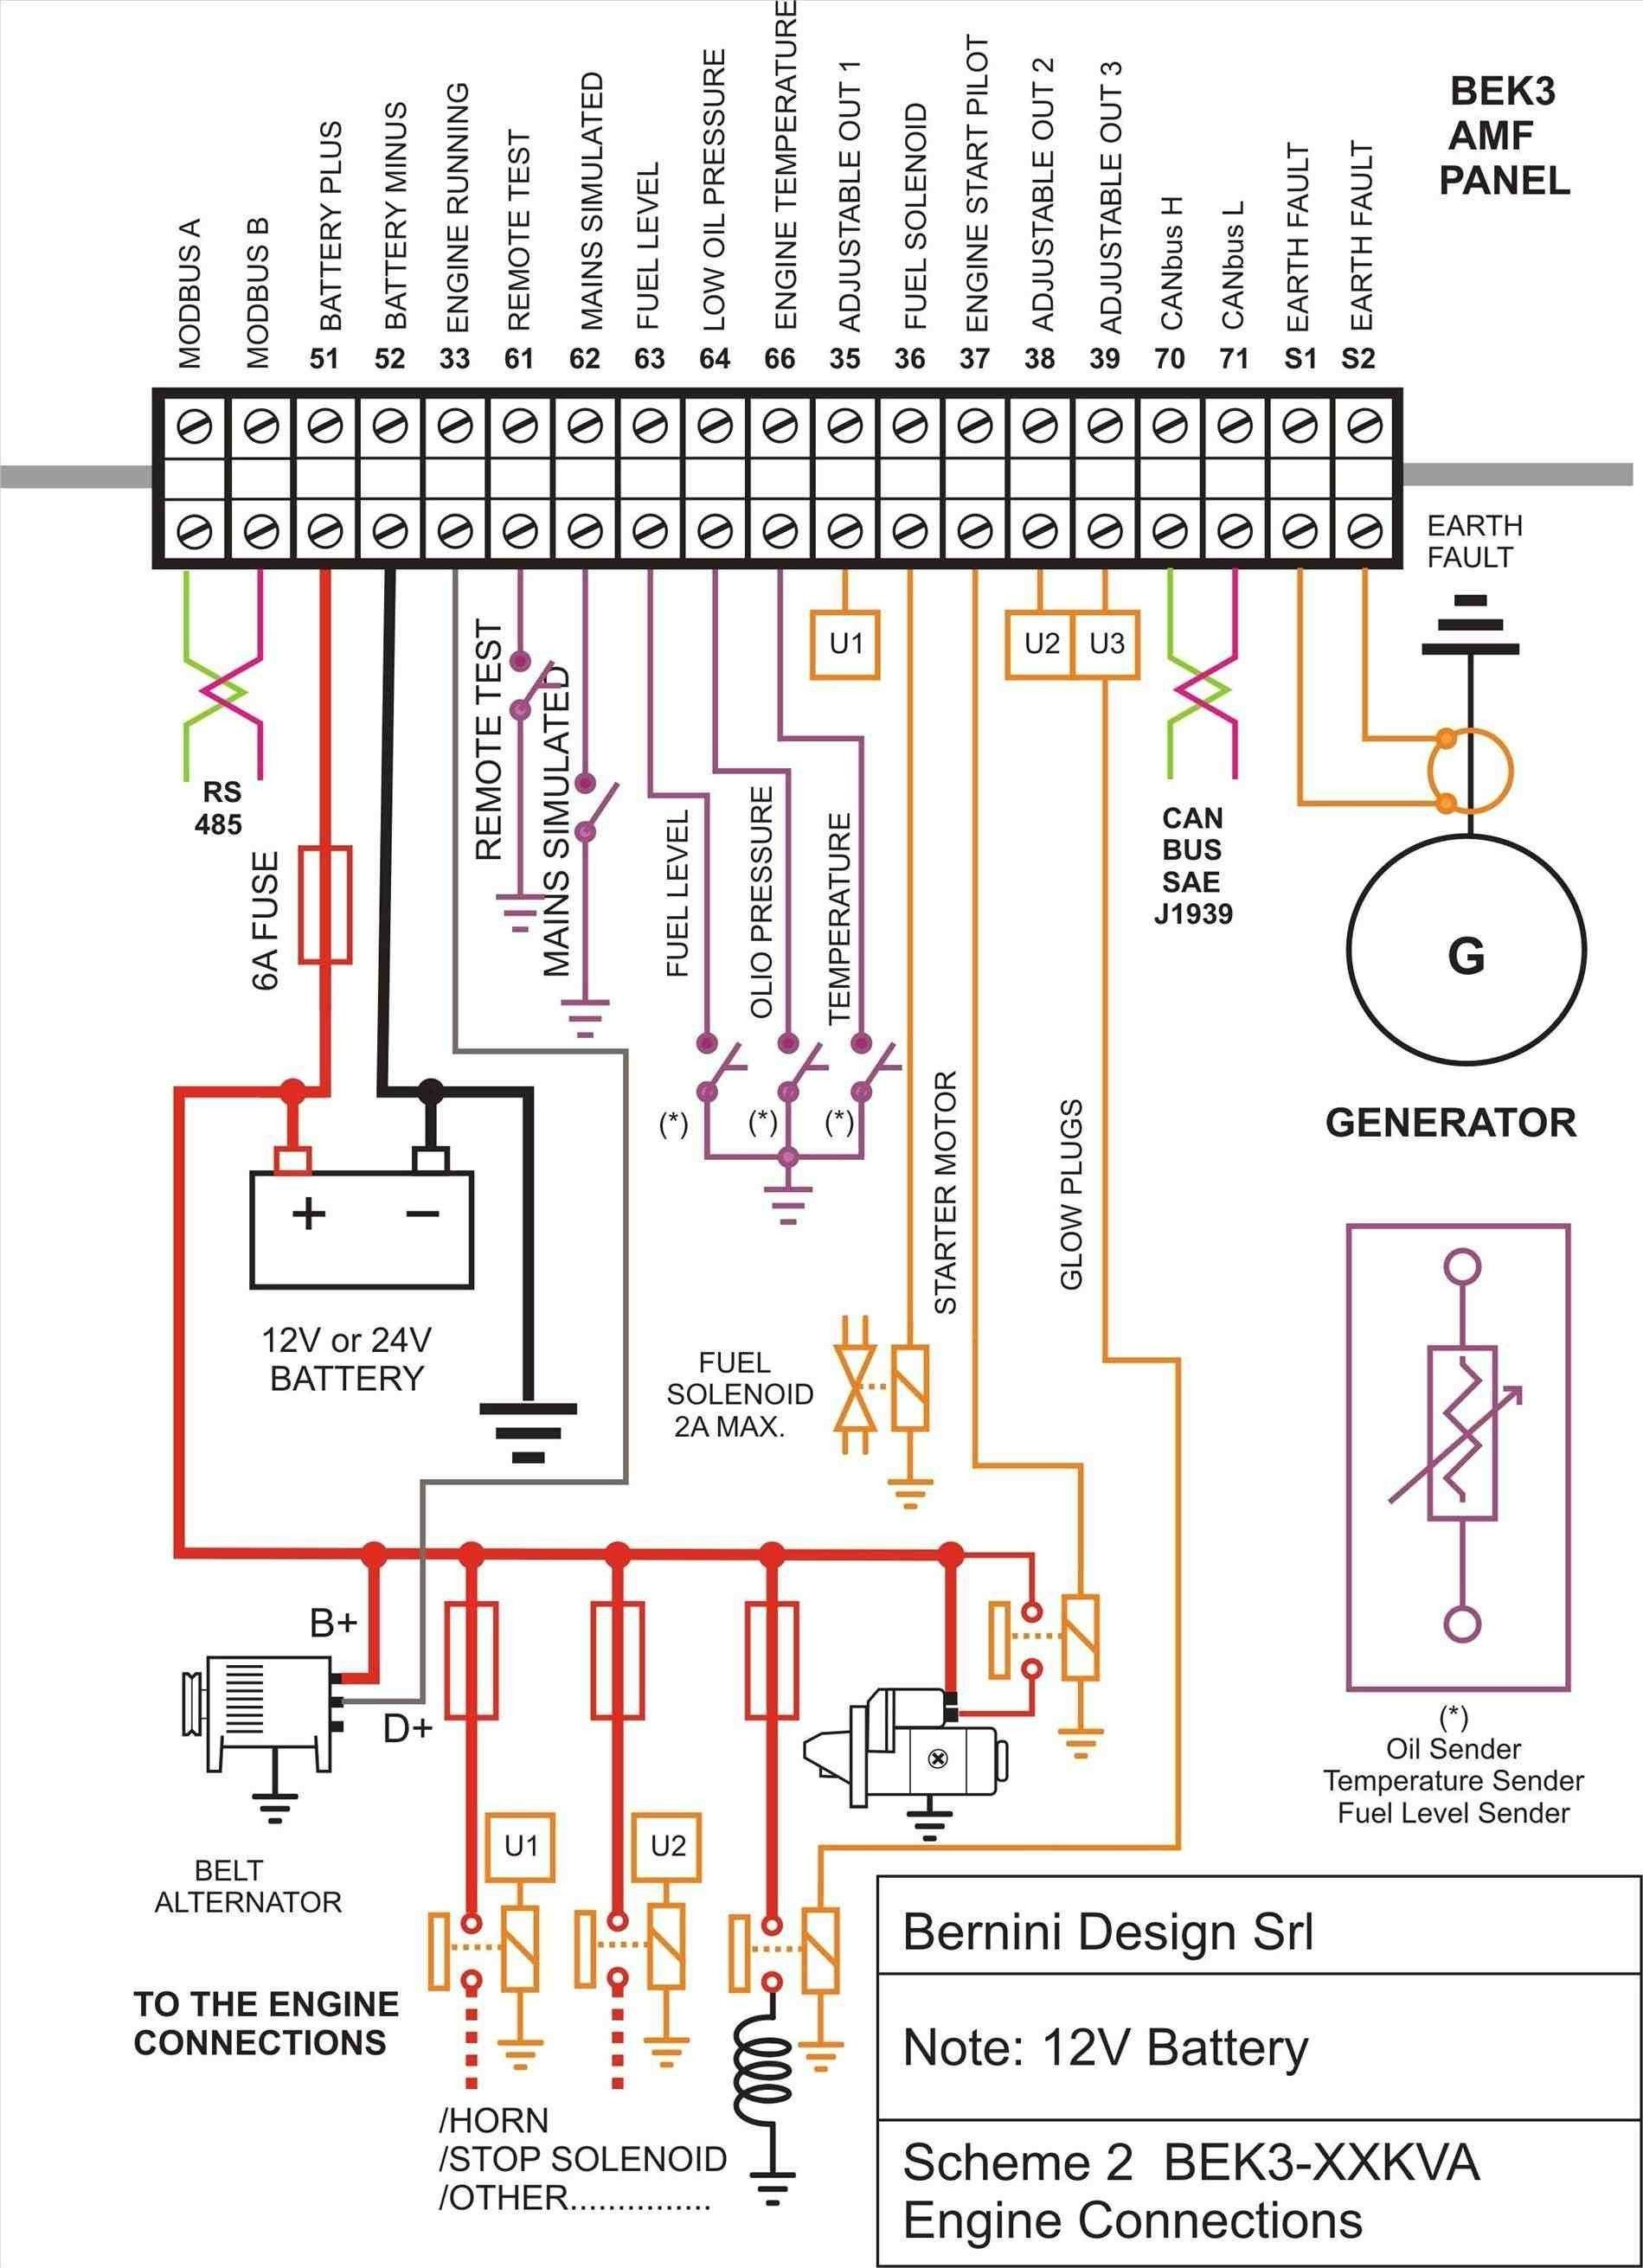 house wiring circuit diagram pdf fresh typical wiring diagram for rh pinterest com house wiring diagram pdf file house electrical wiring diagram pdf